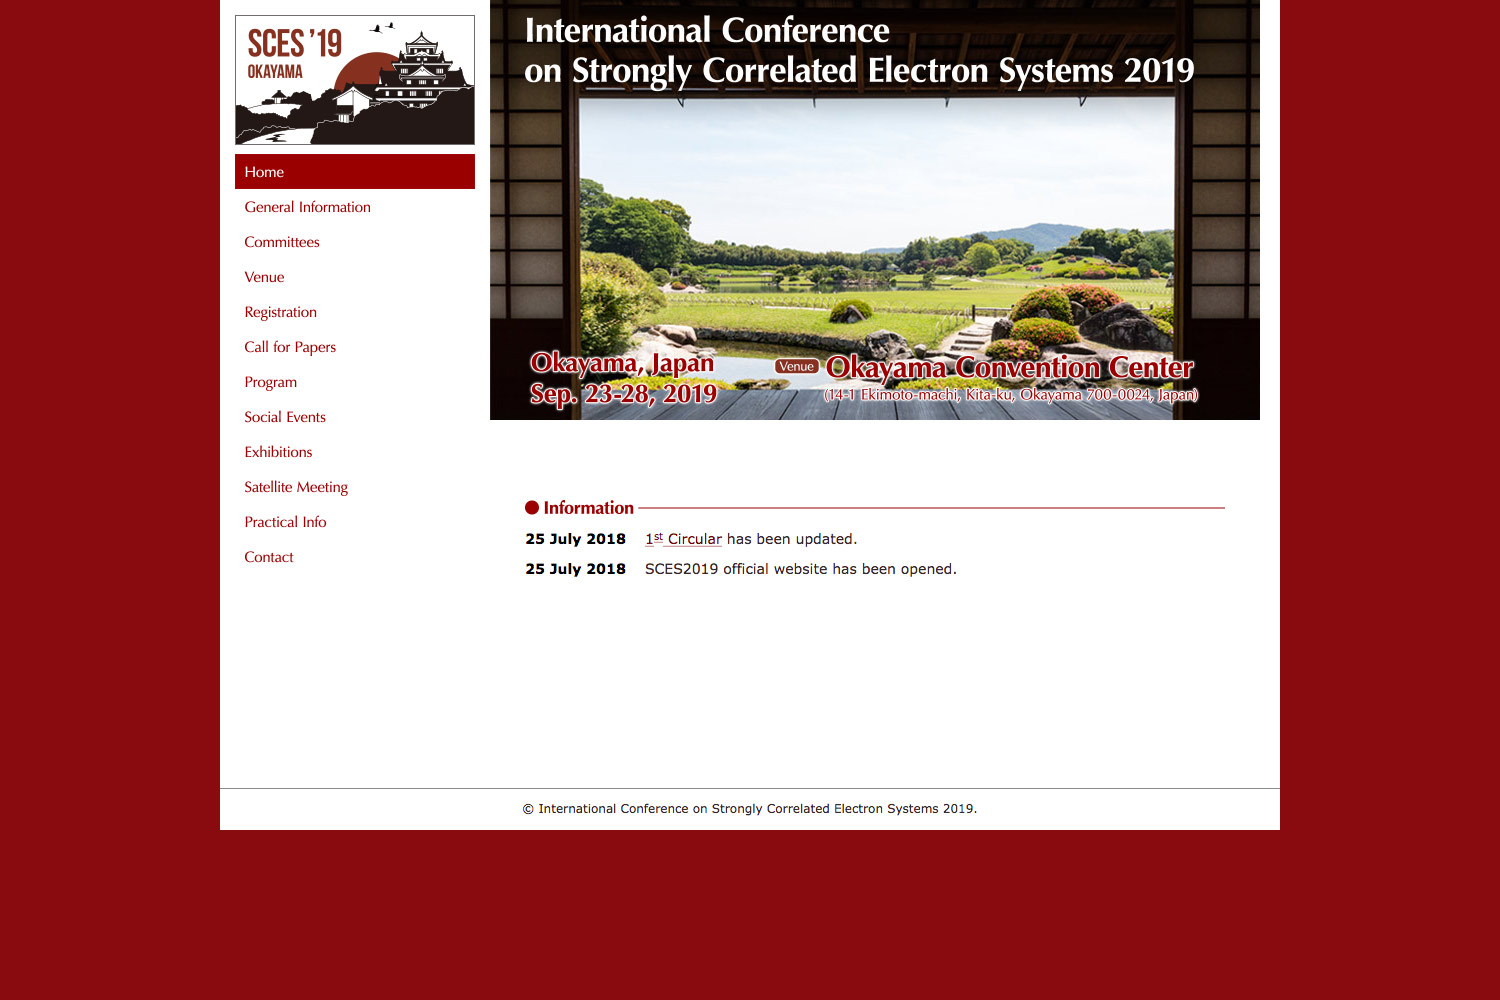 International Conference on Strongly Correlated Electron Systems 2019